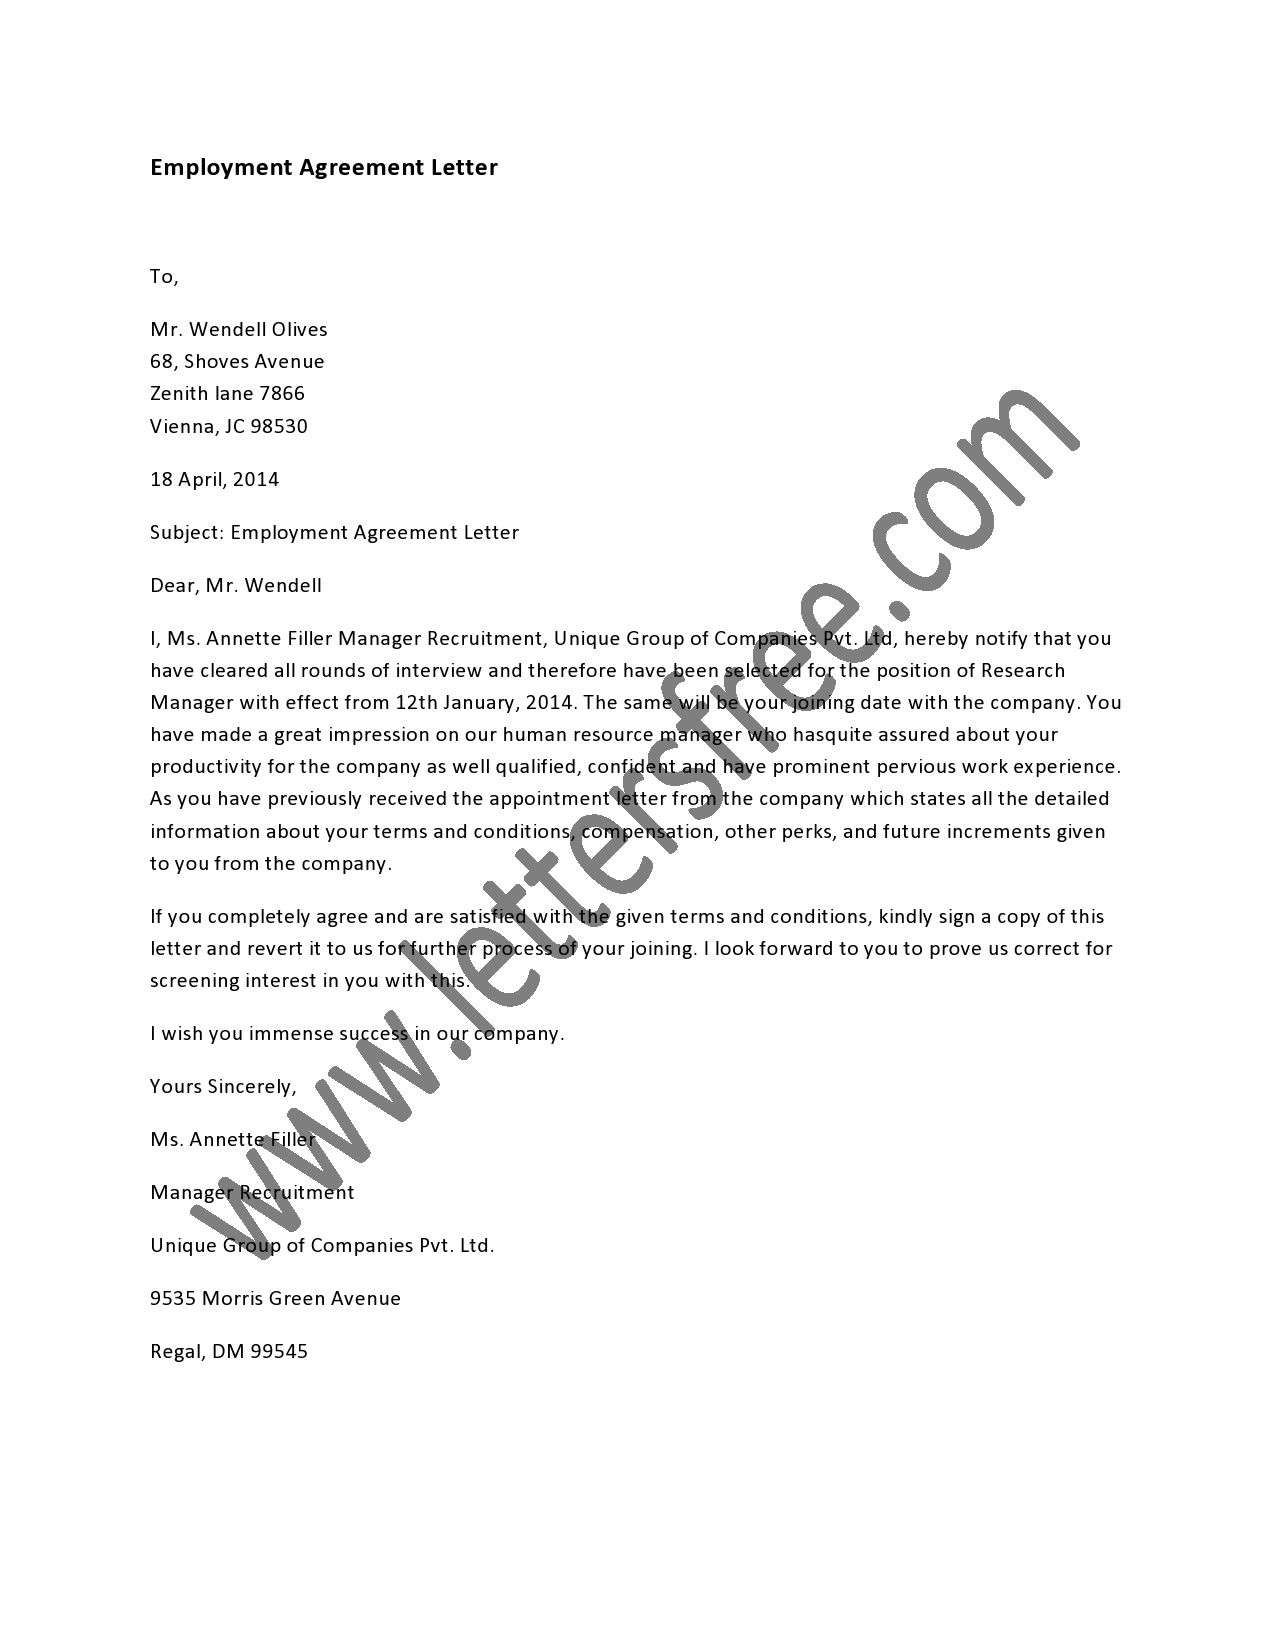 draft an agreement letter for car accident by using the sample for an employment agreement letter is generally a written contract to assure the employment of a candidate